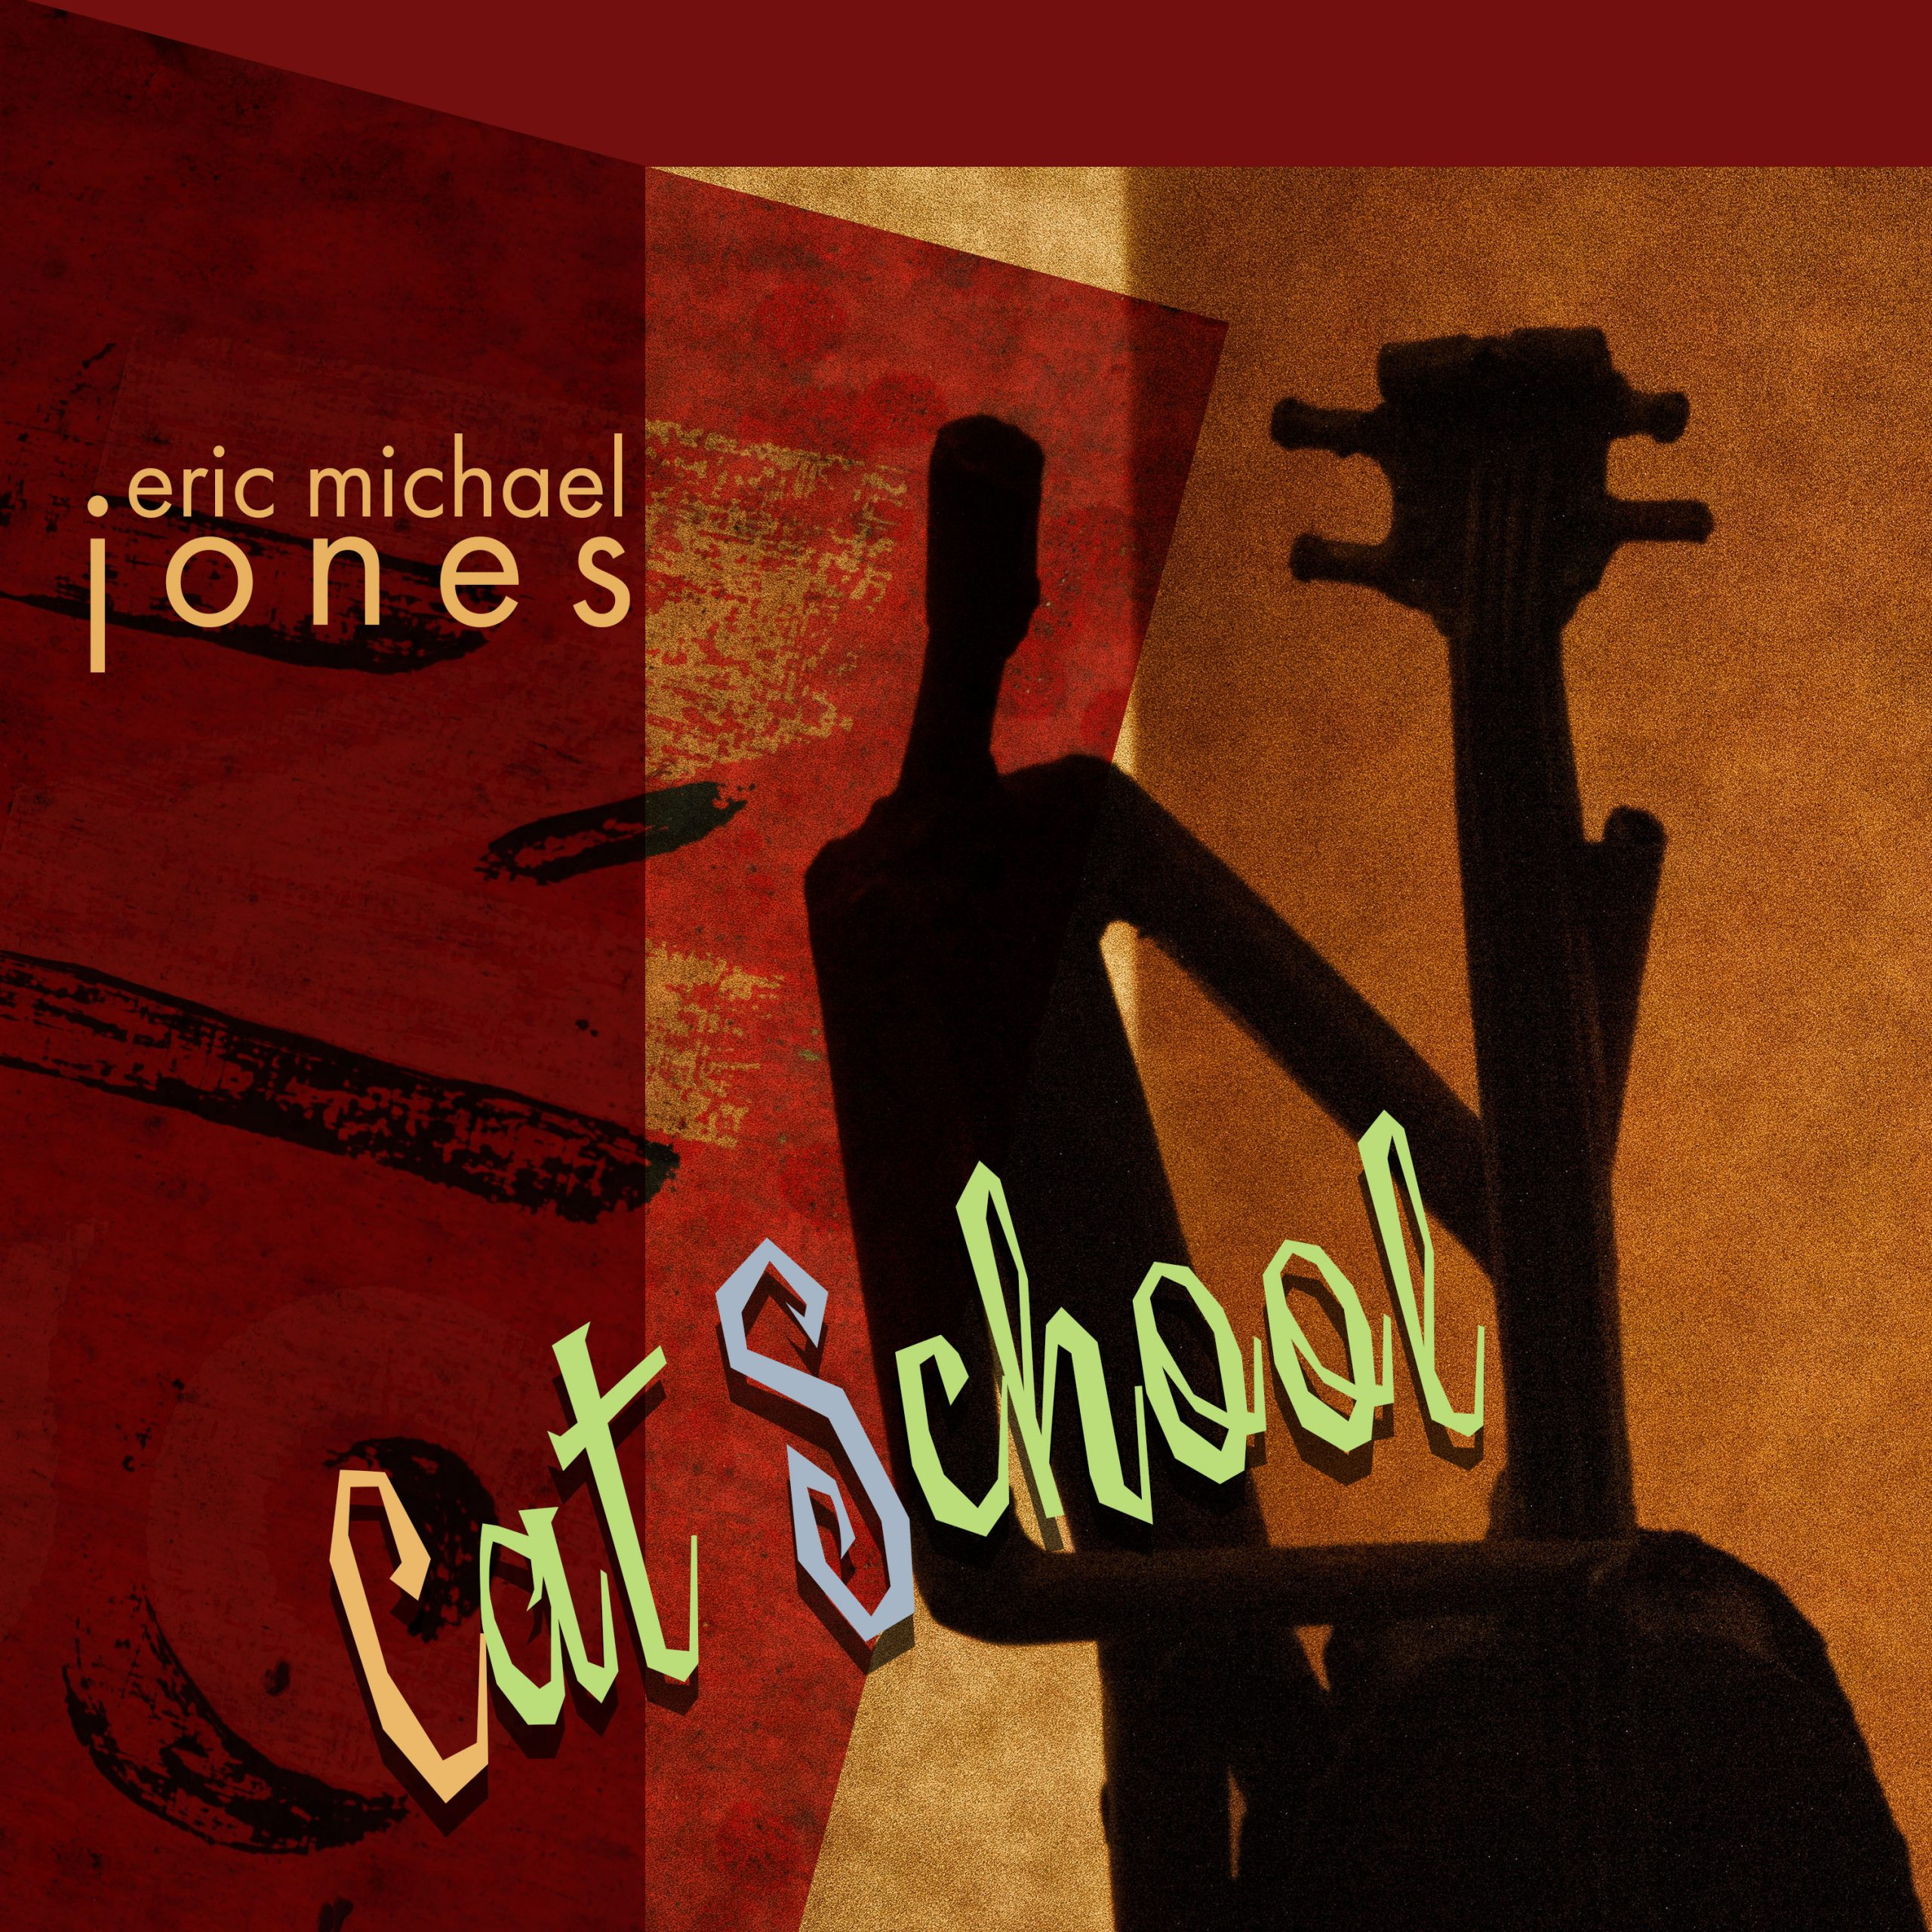 Cover rt for Cat School, showing a graphic of a bass musician